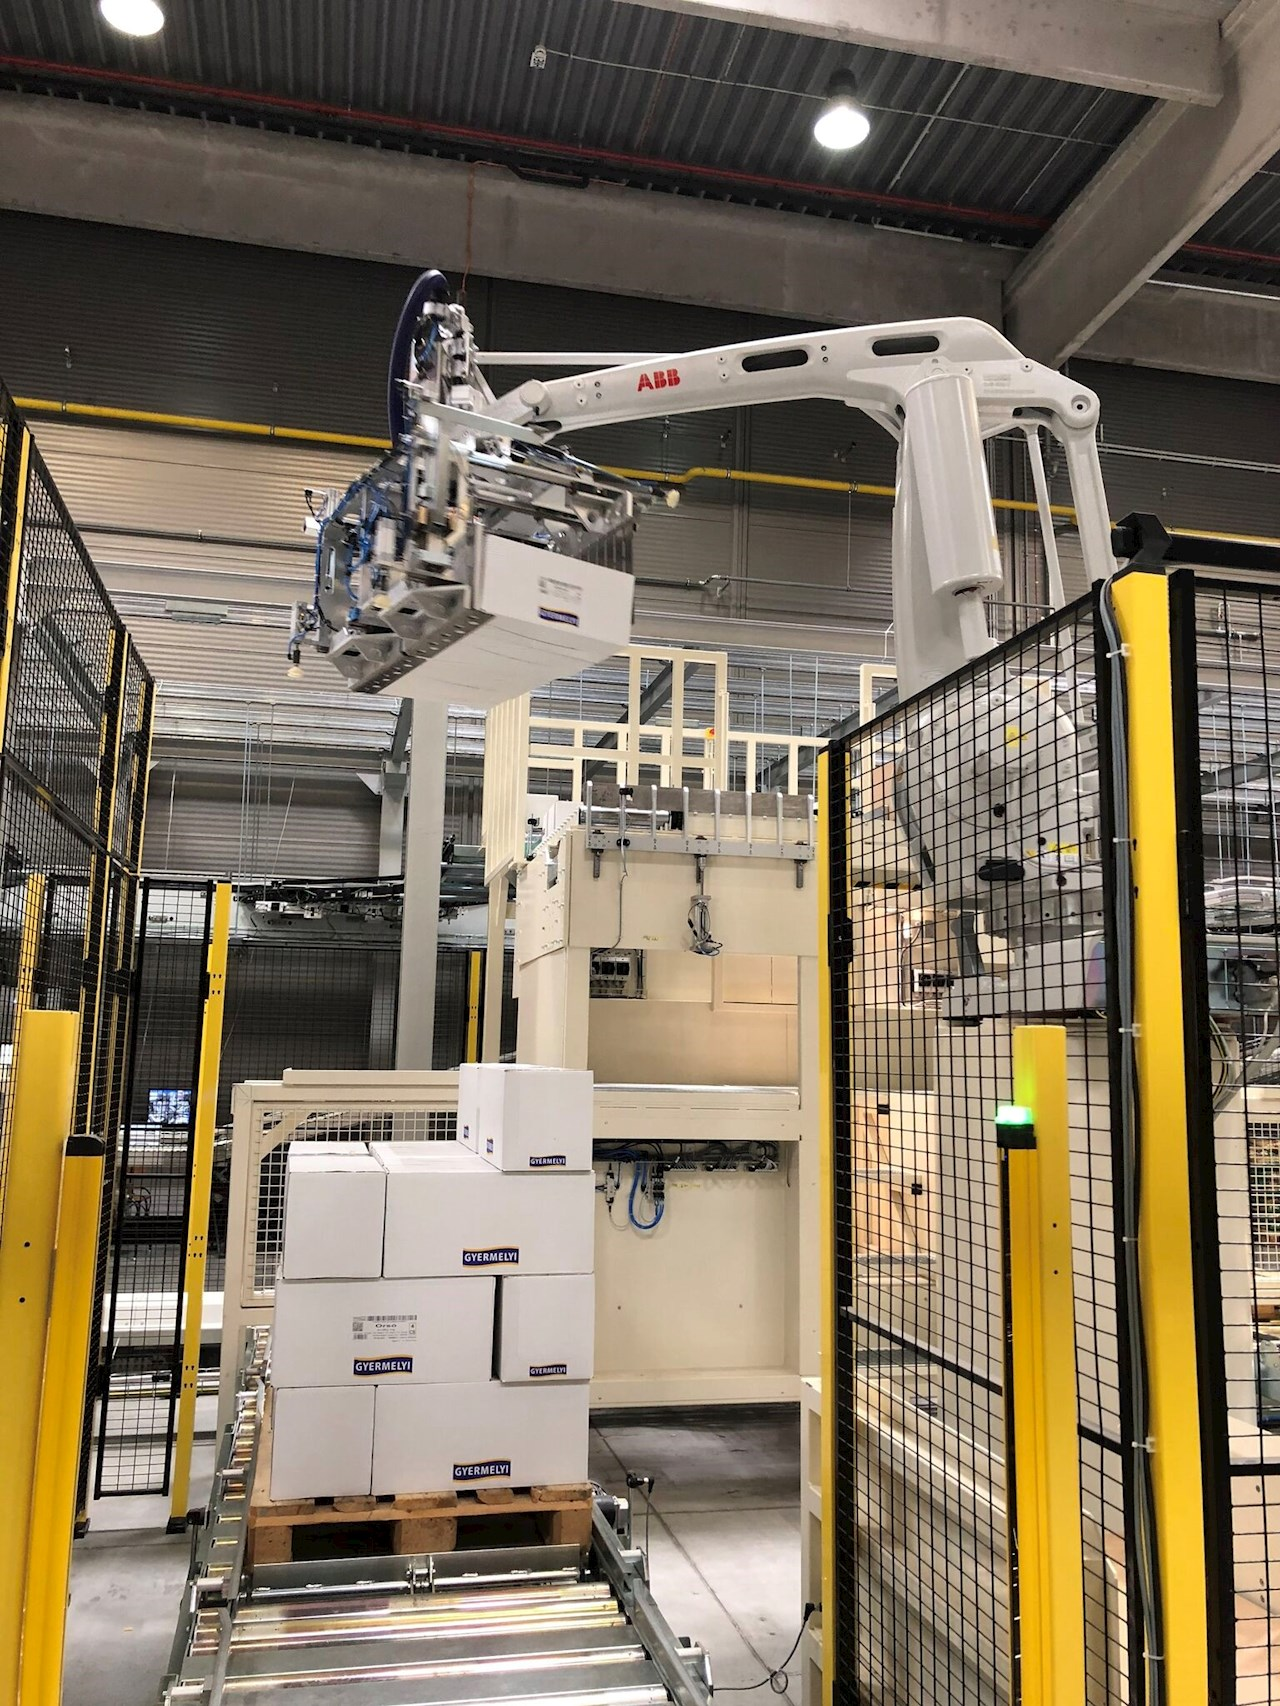 Palletizing robots offer tireless endurance for repetitive lifting, while adding flexibility for diverse consumer needs.